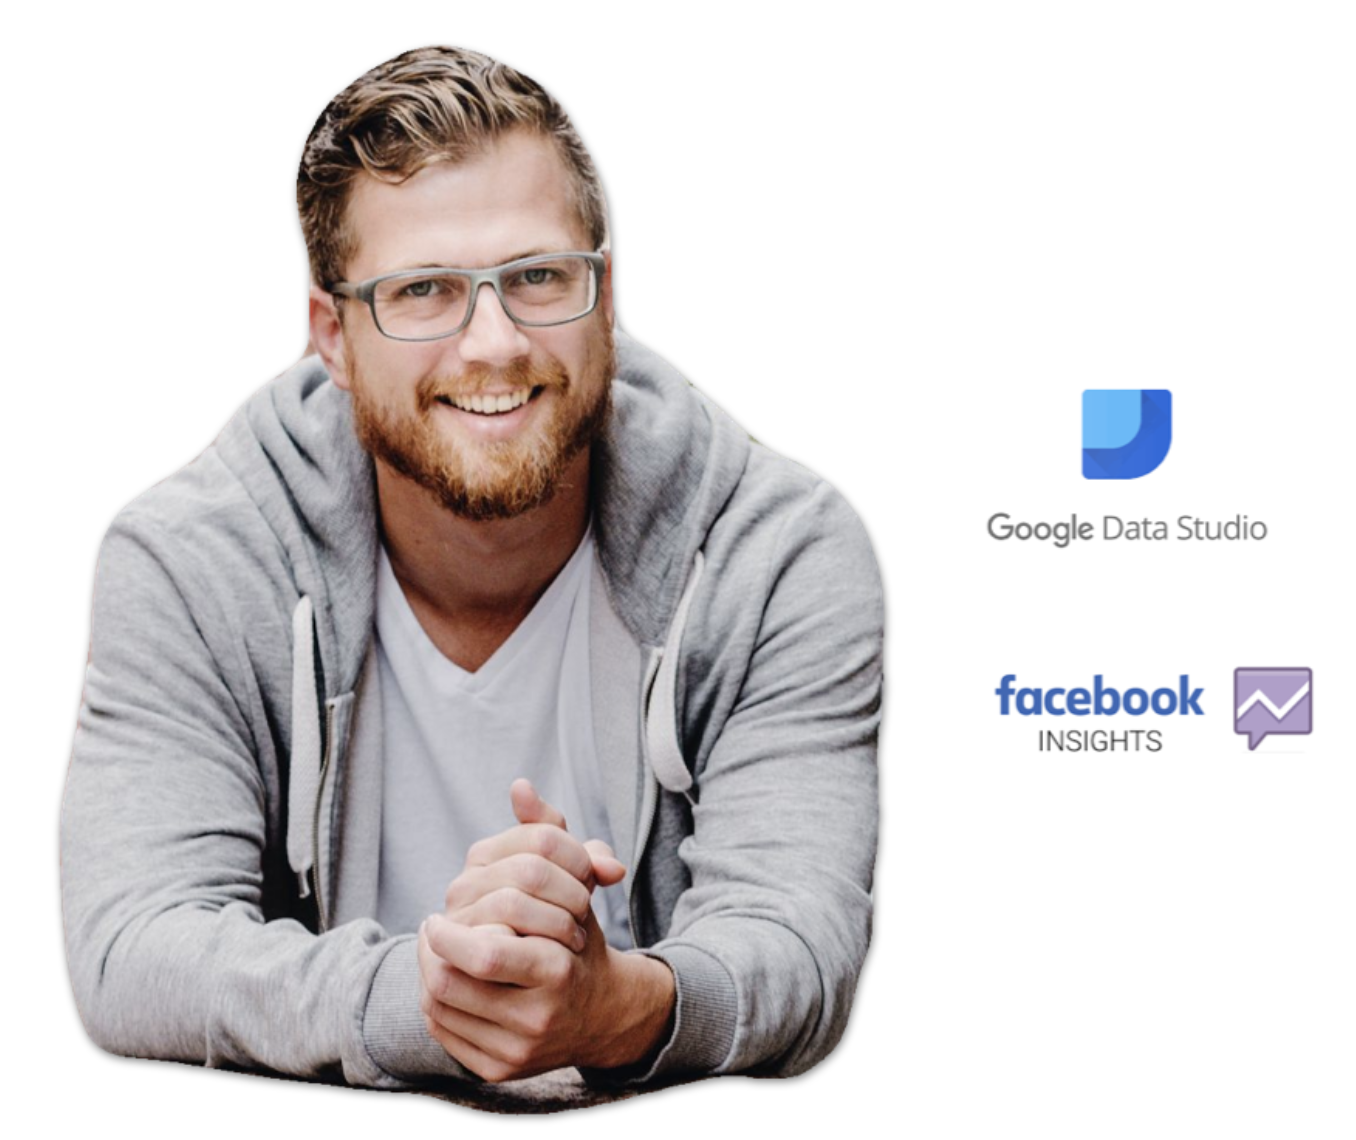 Facebook insights to Google Data Studio